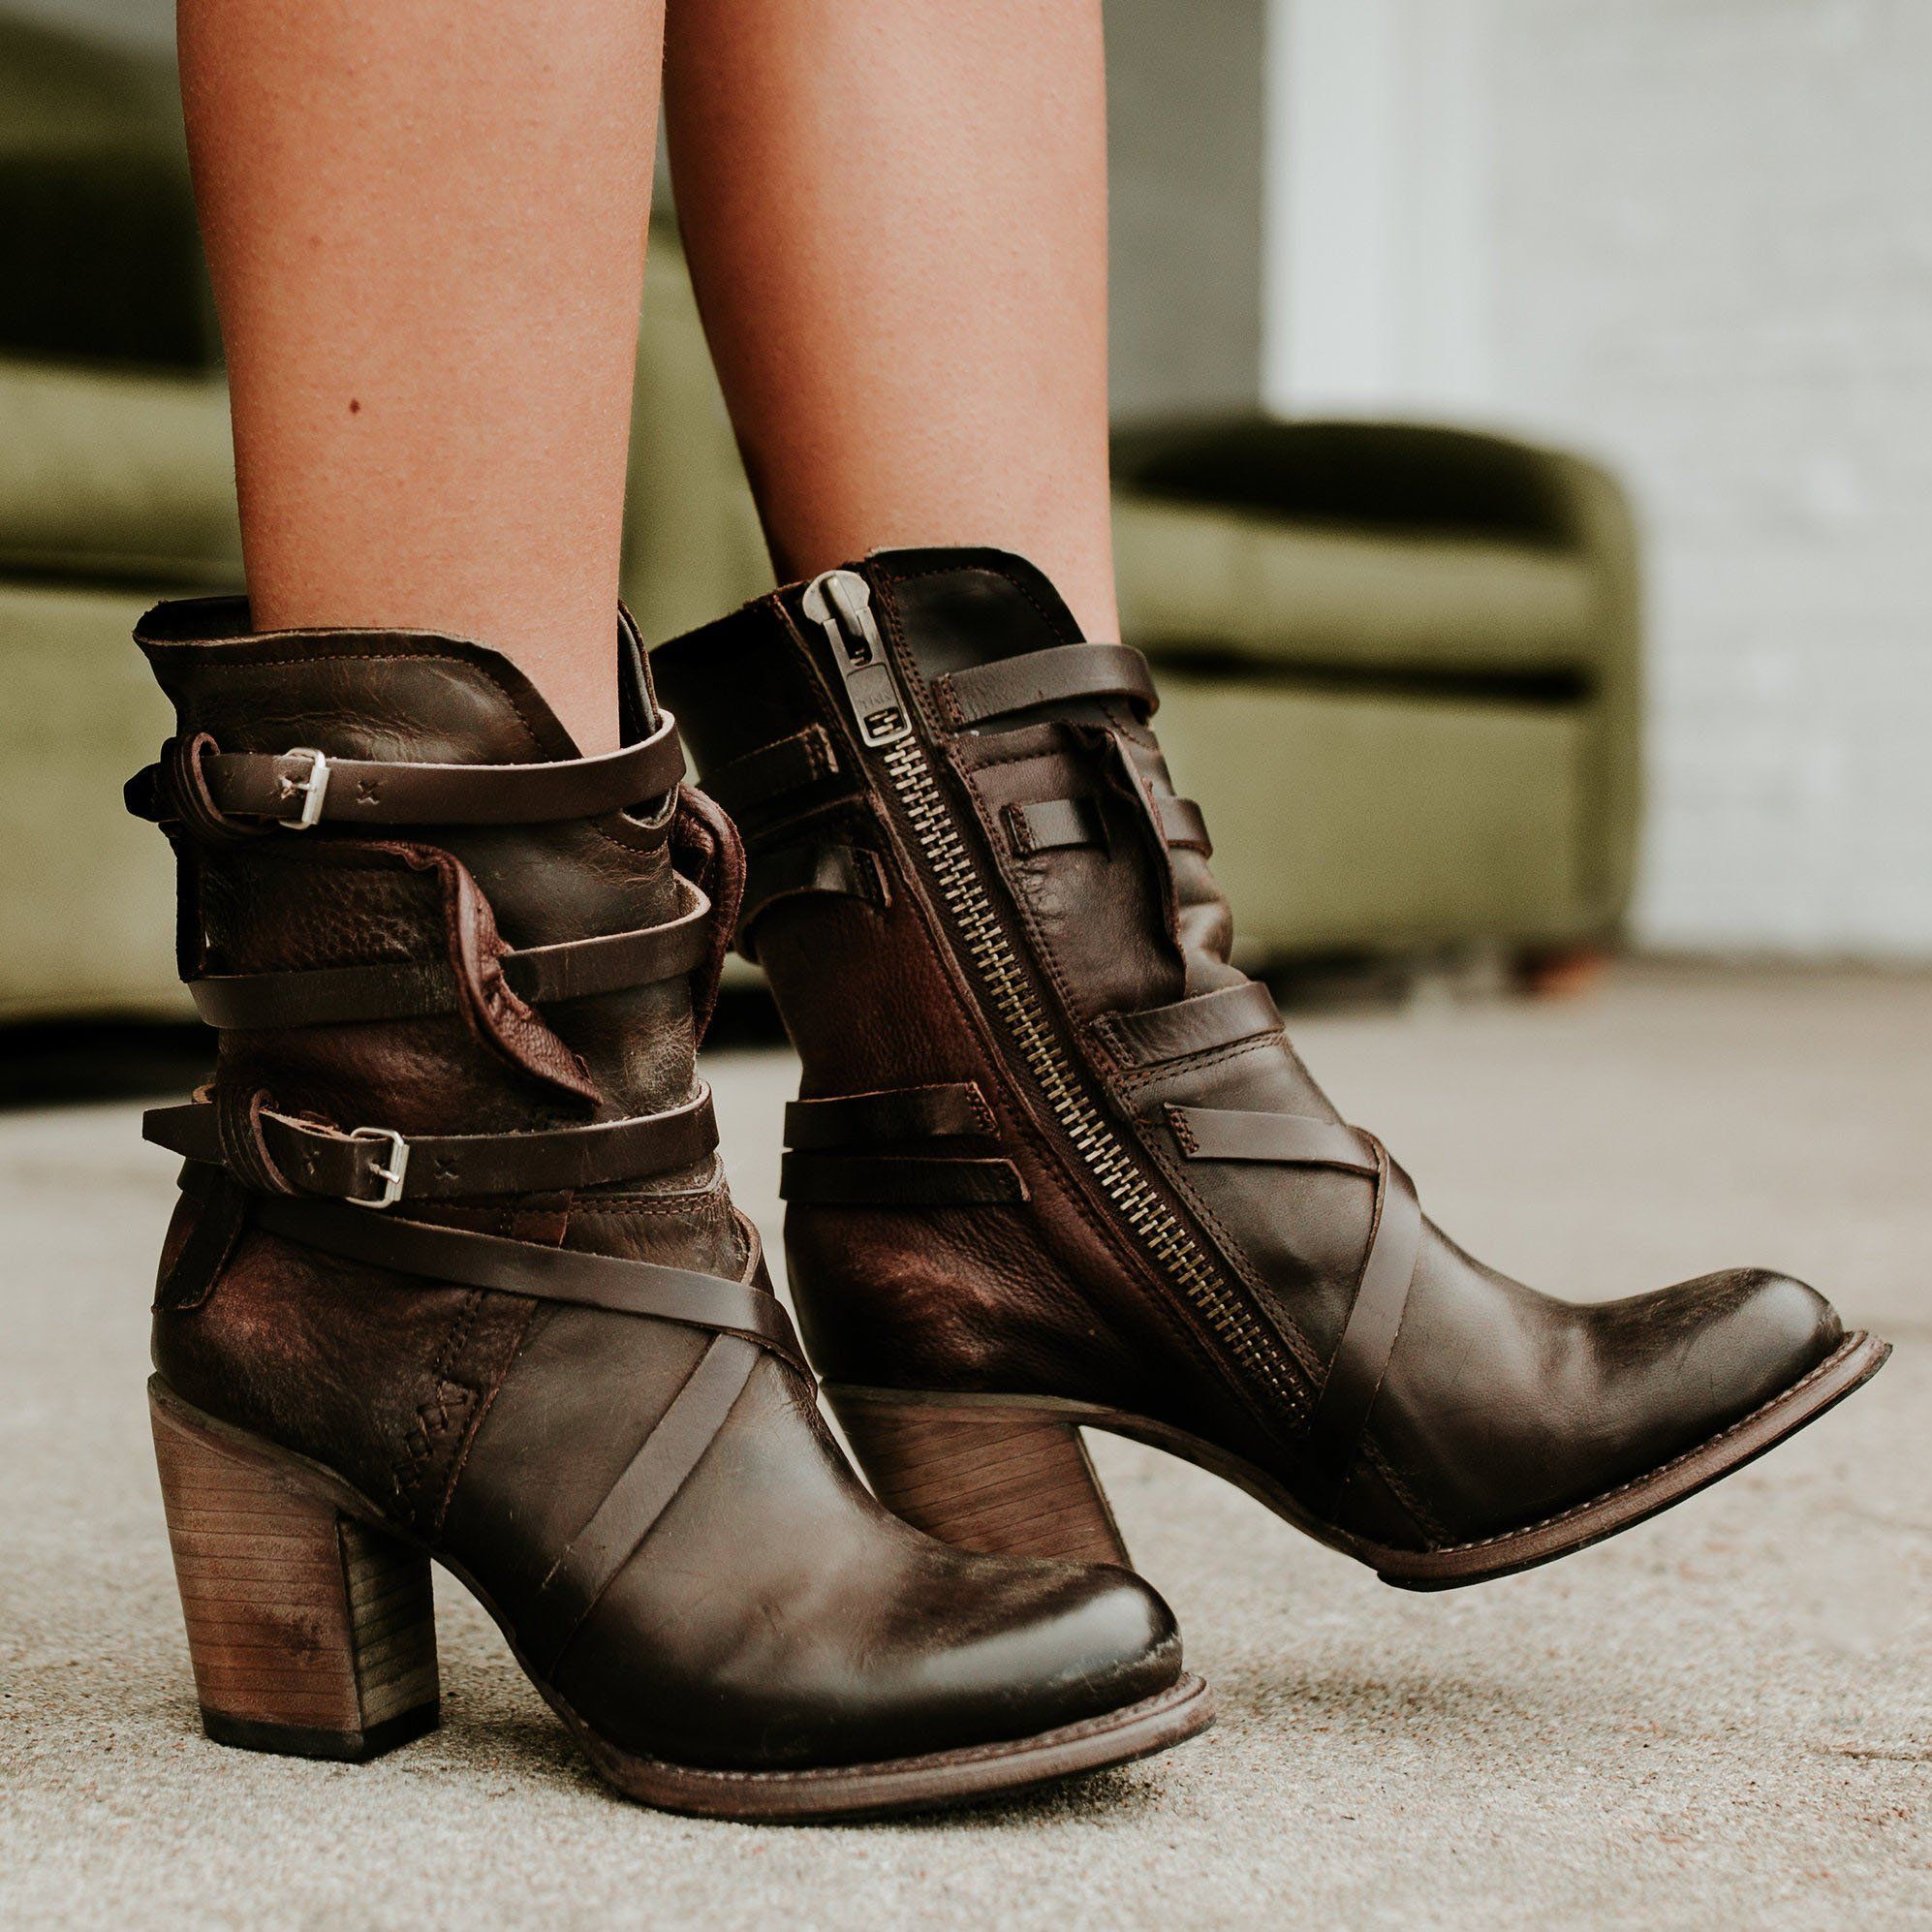 e734bc1447a Baker in 2019 | Shoes <3 | Shoes, Boots, Shoe boots